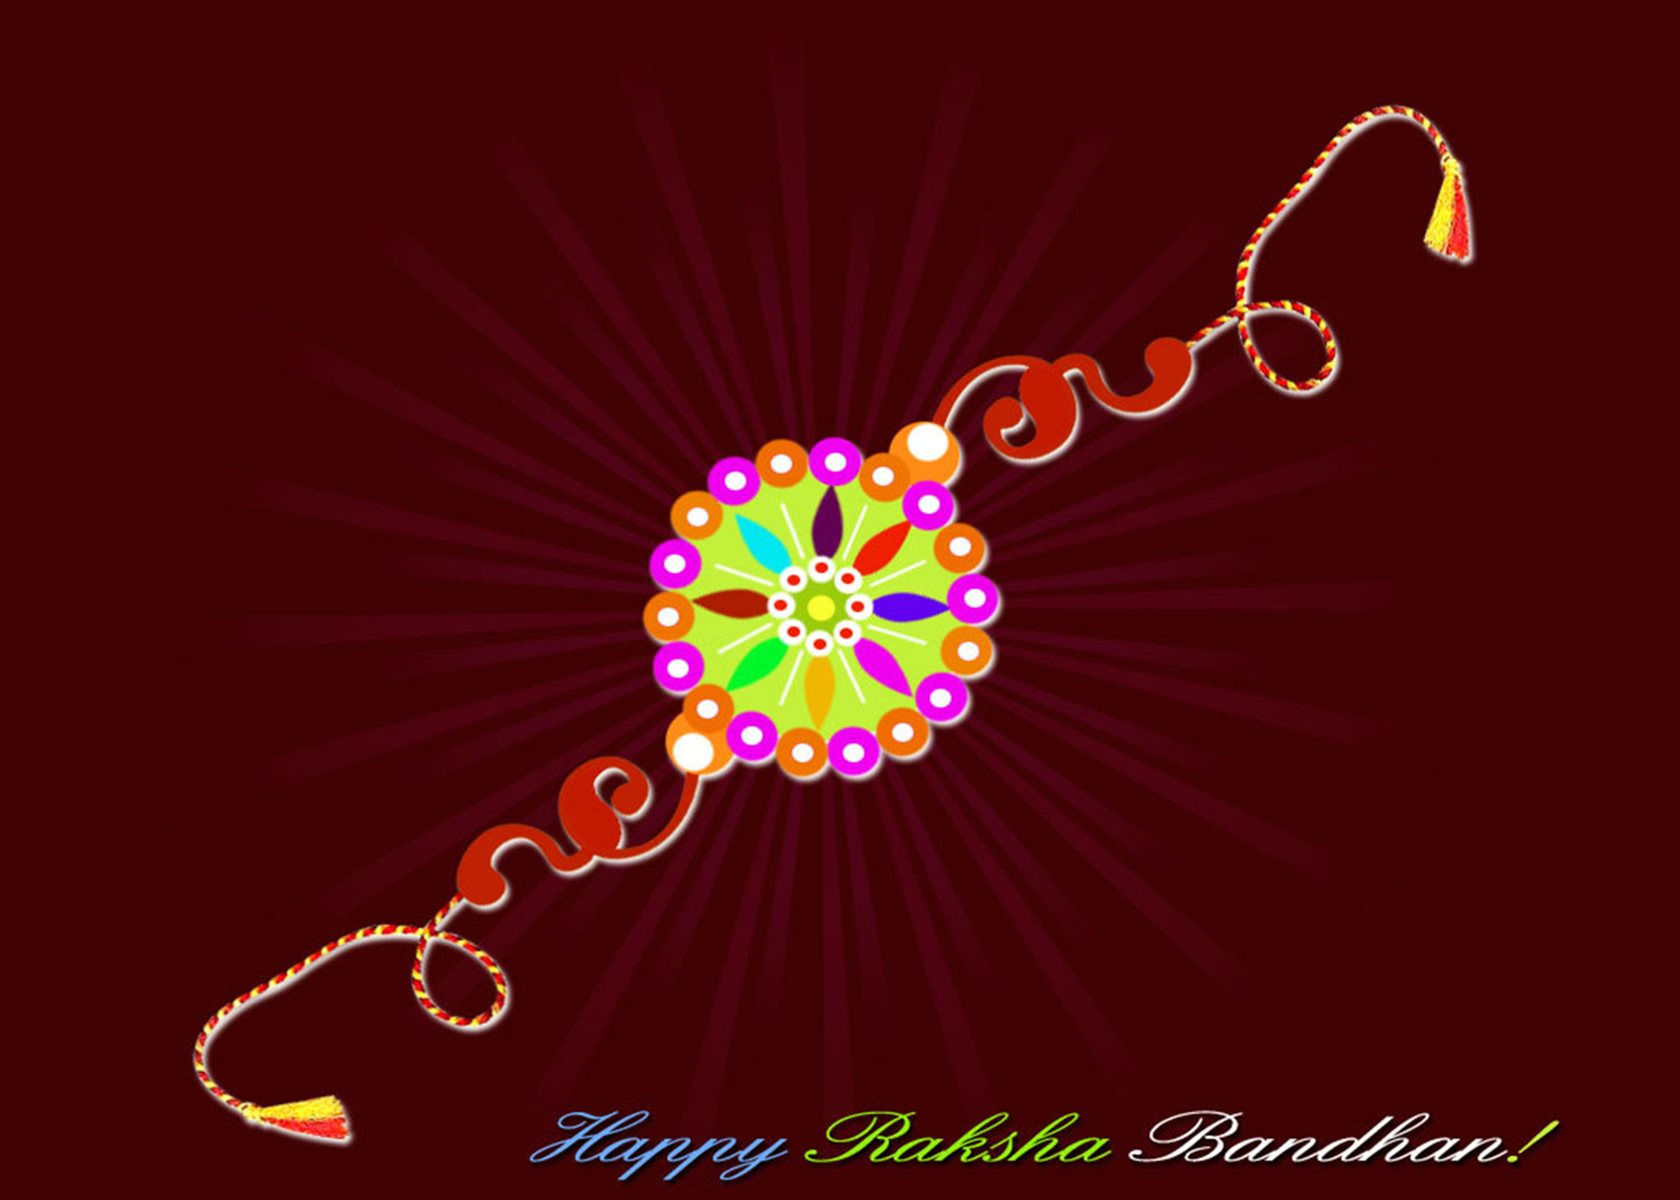 background image desktop raksha bandhan wishes